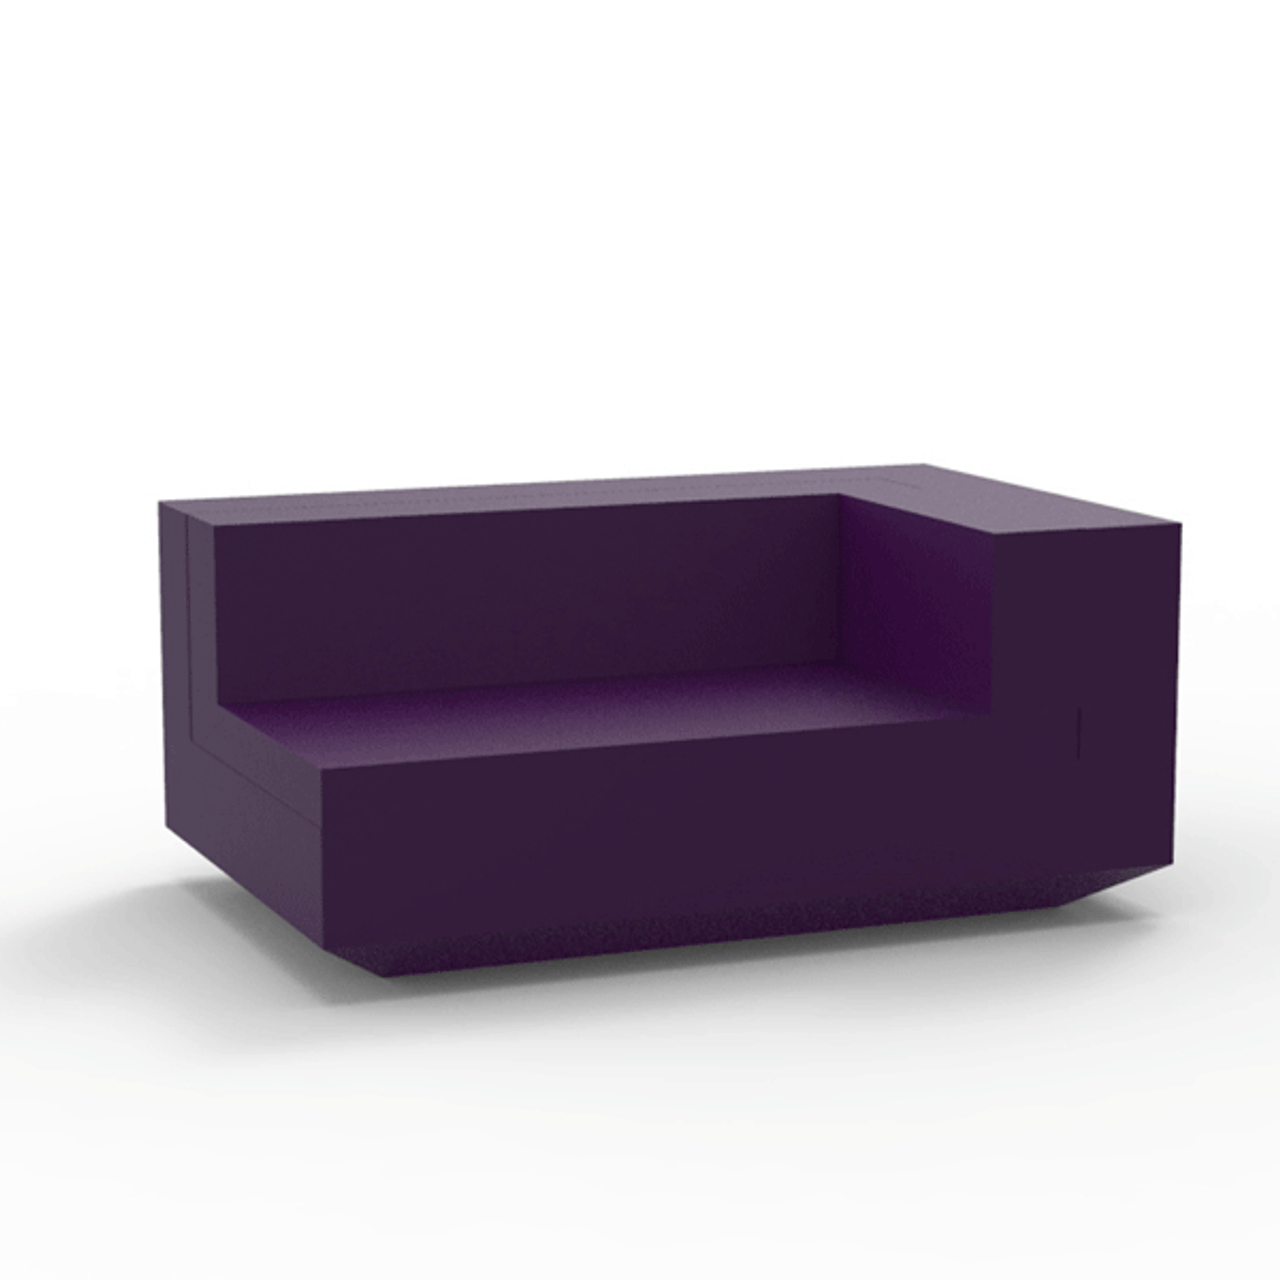 Cool Vela Sectional Sofa Chaise Lounge Right Pdpeps Interior Chair Design Pdpepsorg